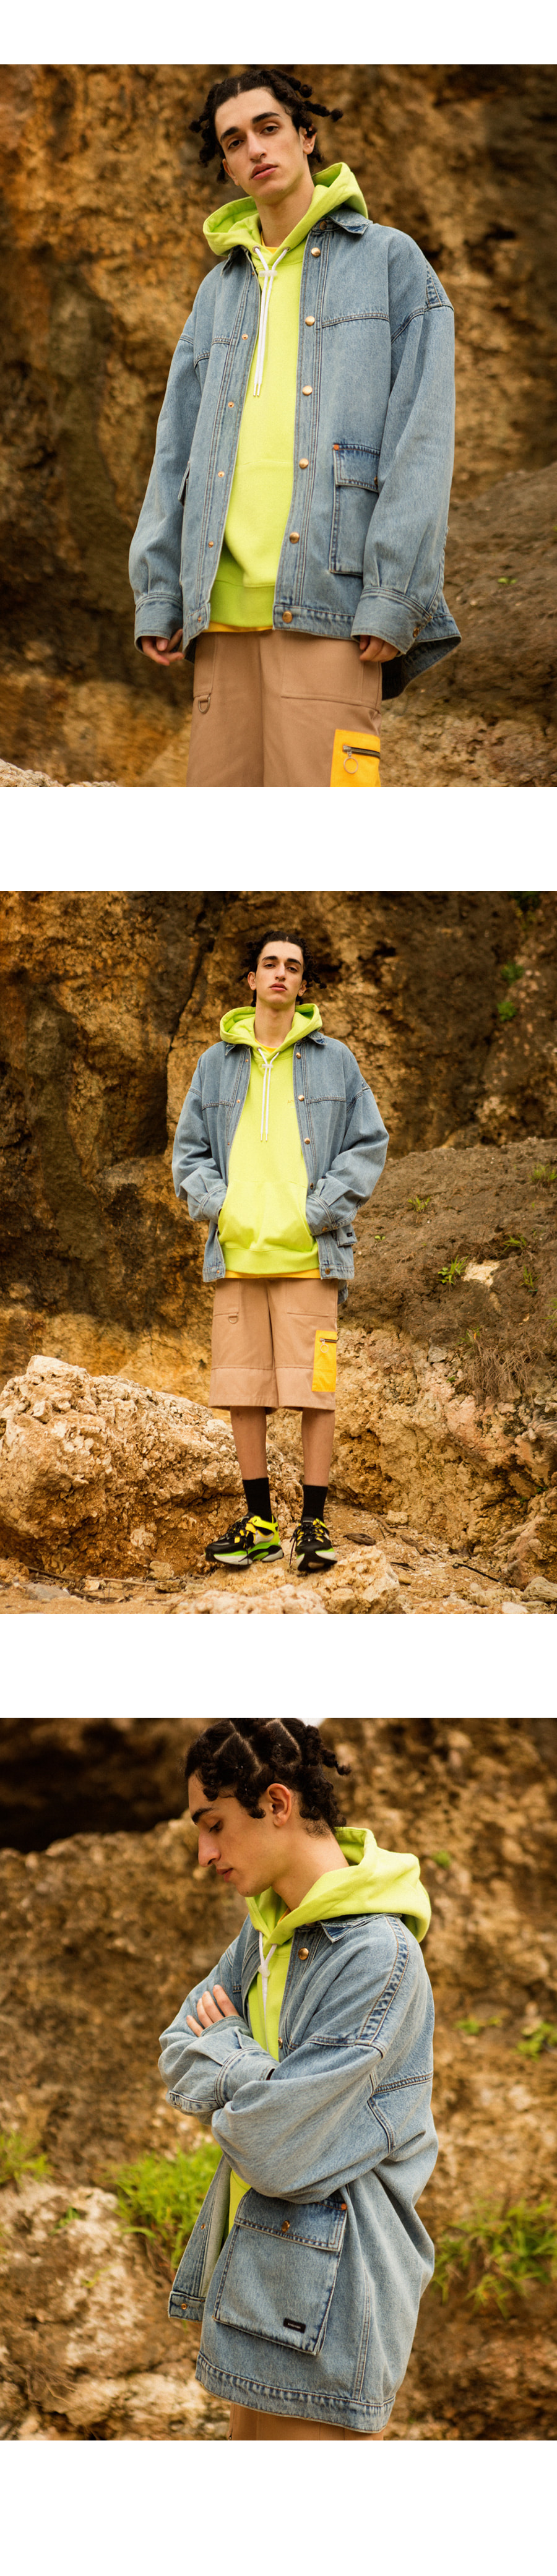 앤더슨벨 UNISEX RUNNING EMBROIDERY ANDERSSON HOODIE LIGHT GREEN atb295u